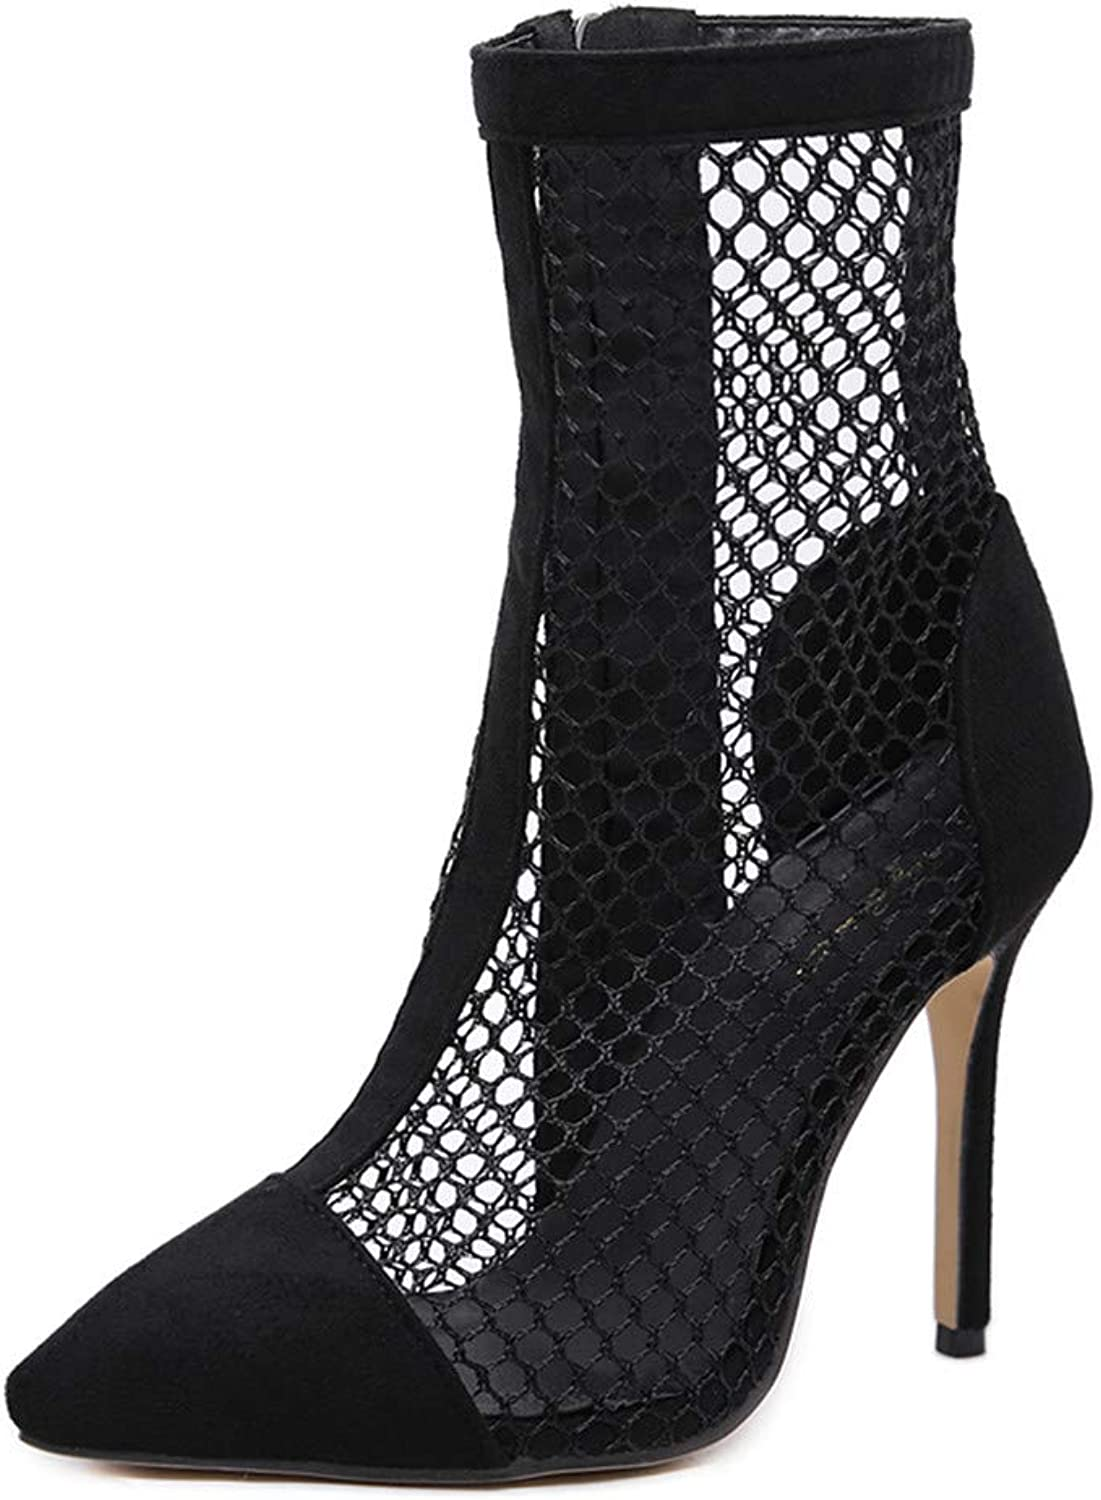 Tailisha Women's Fashion Ankle Boots - Mesh Gauze Hollowed Comfortable Pointed High Heel Booties Black